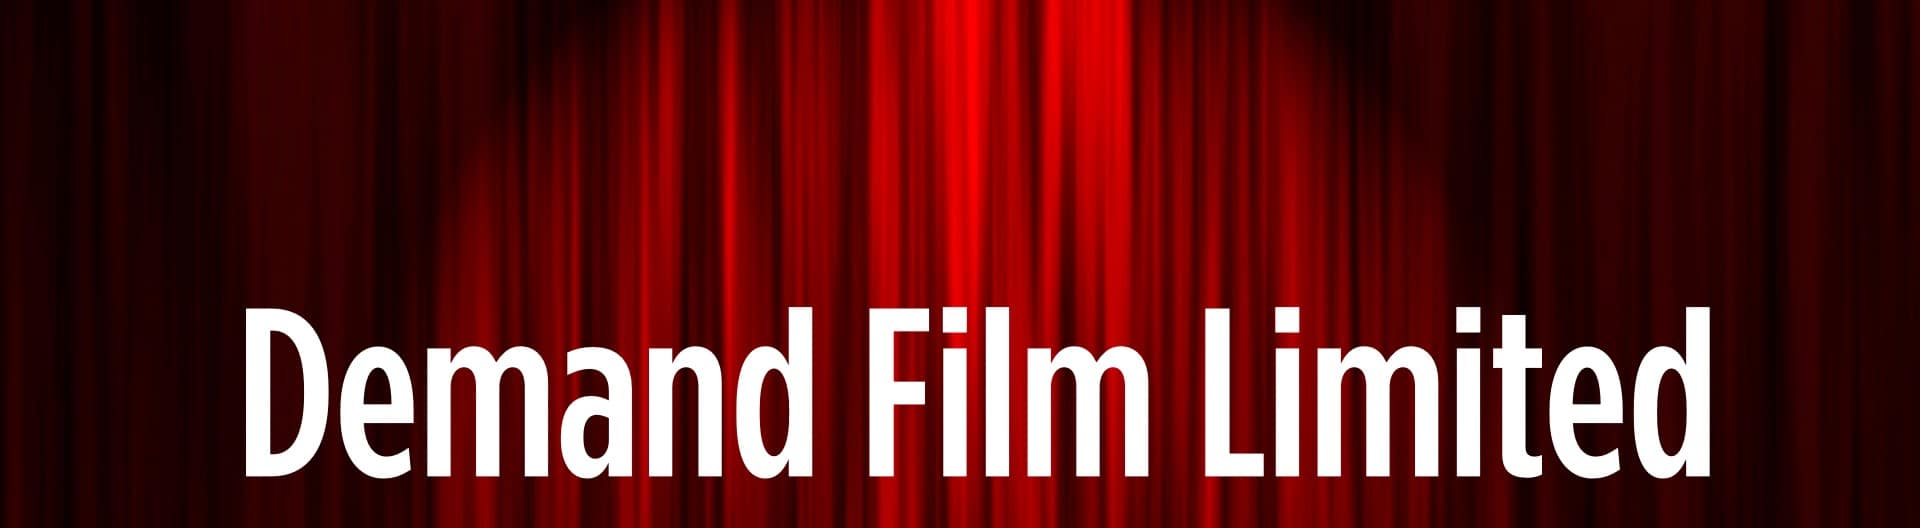 Demand Film title on a red curtain